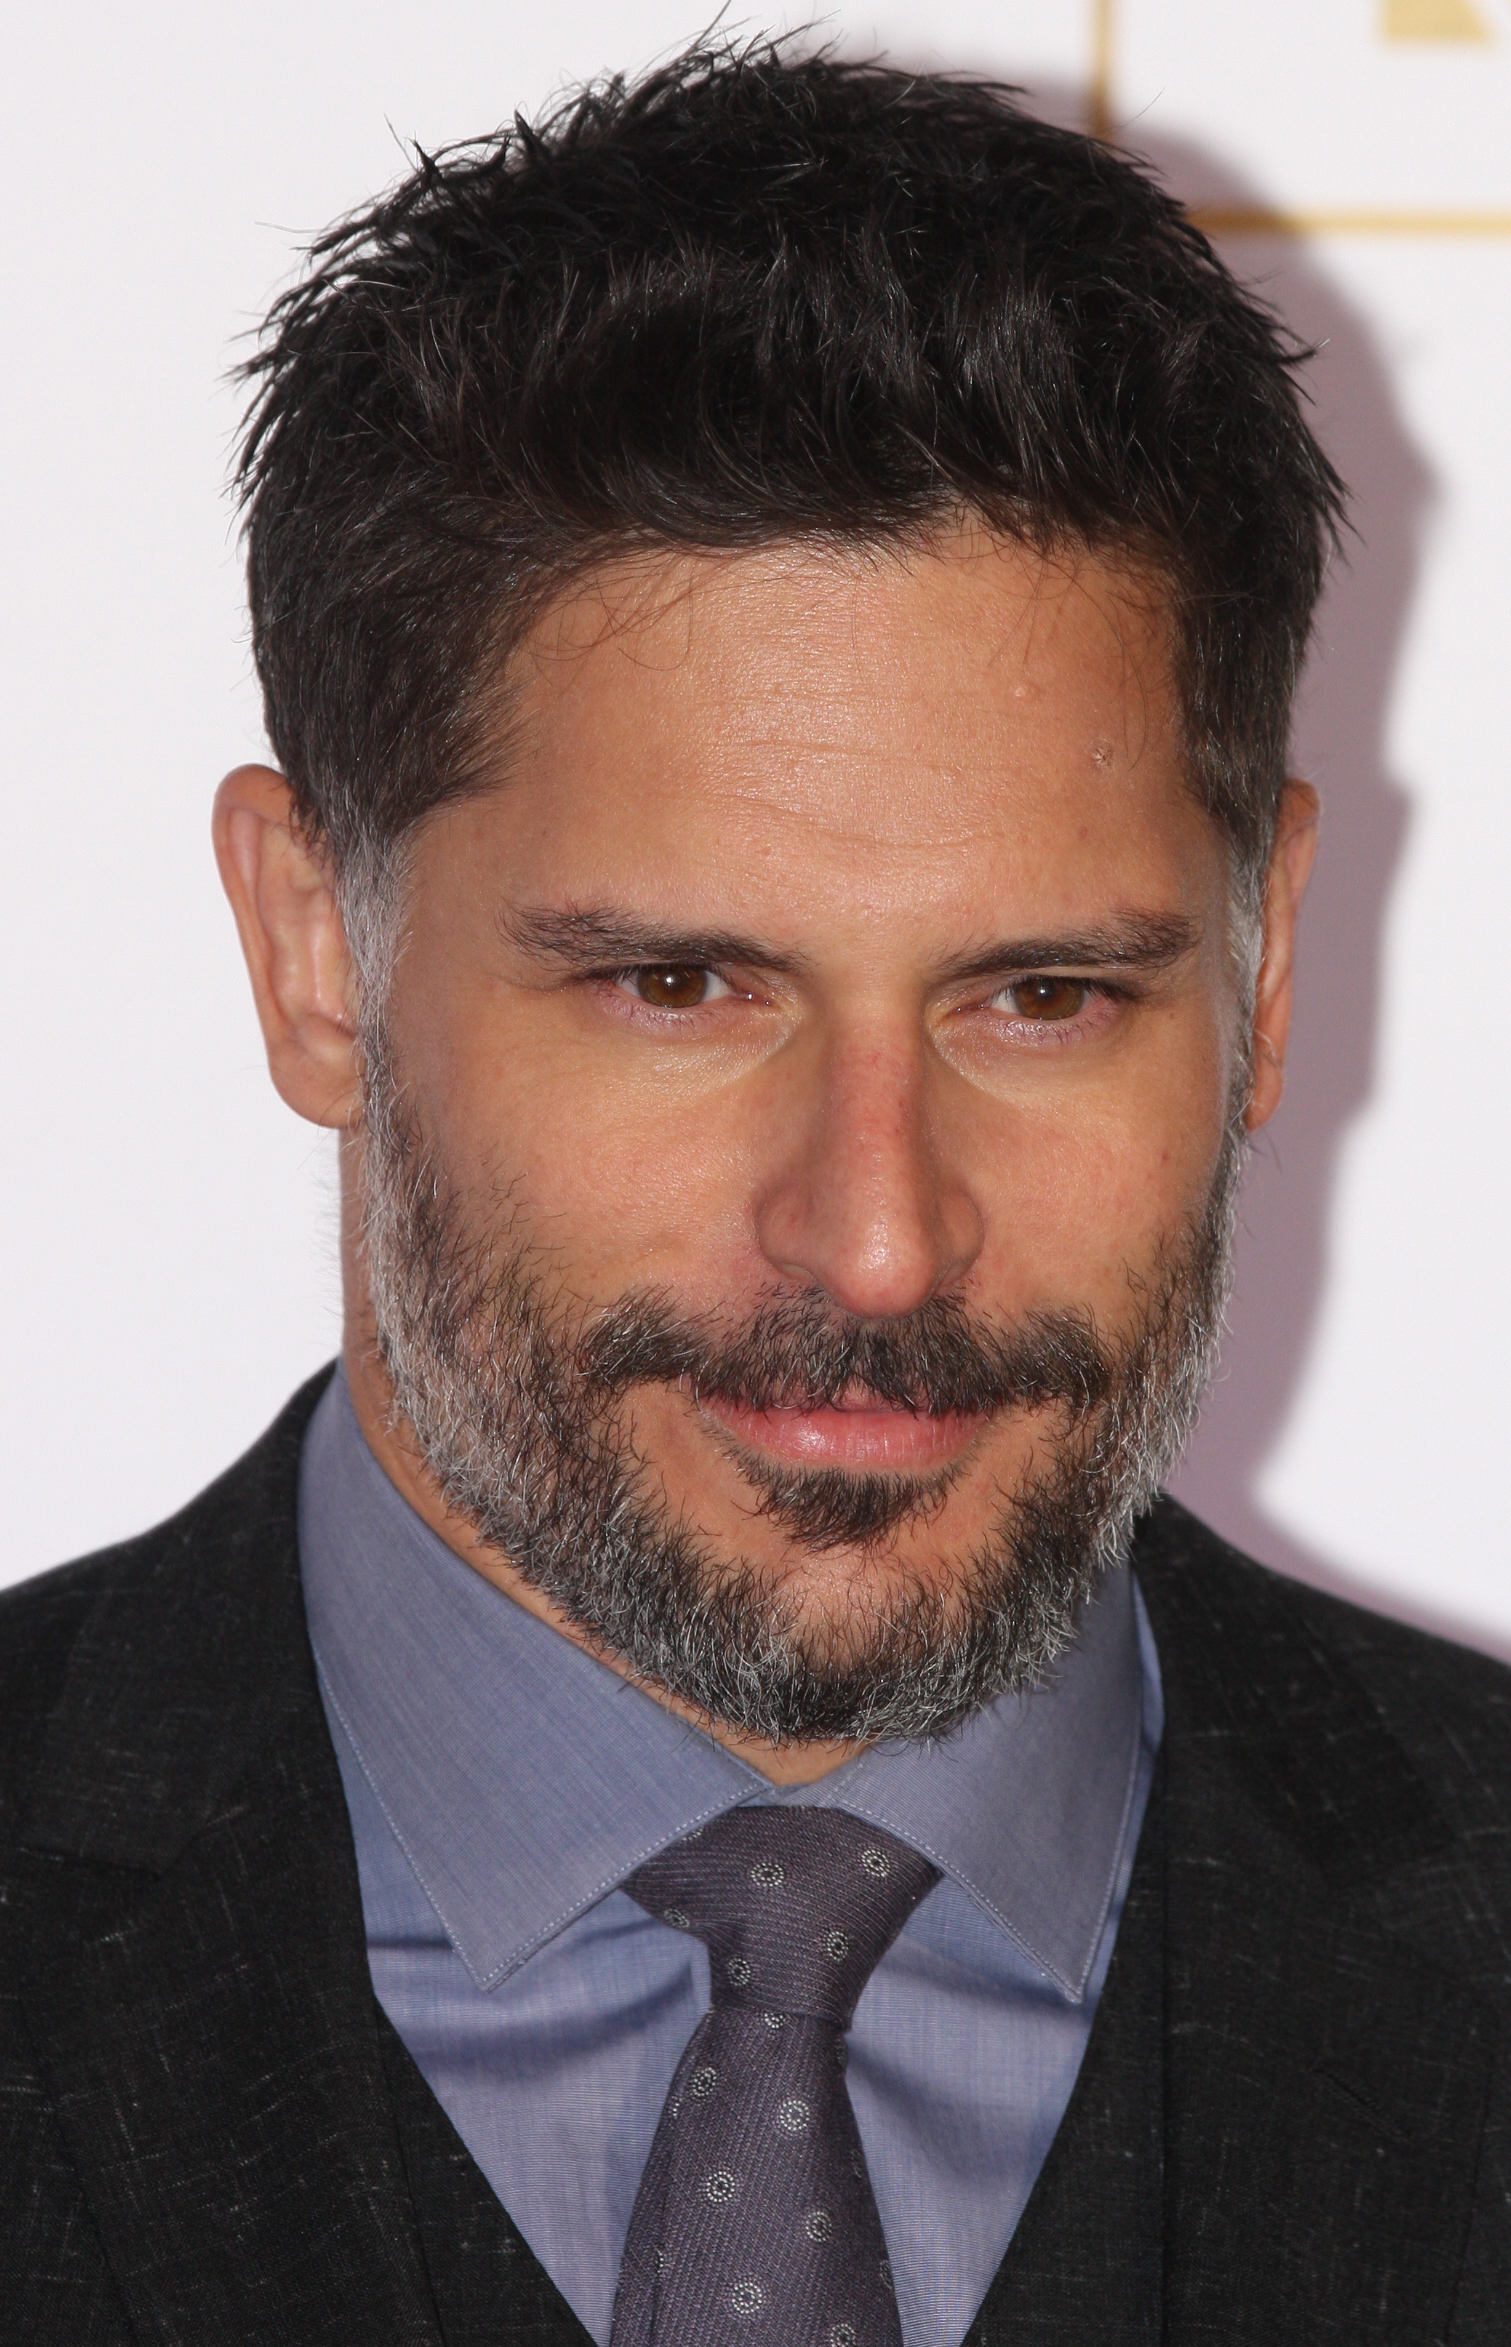 Joe Manganiello - Wikipedia